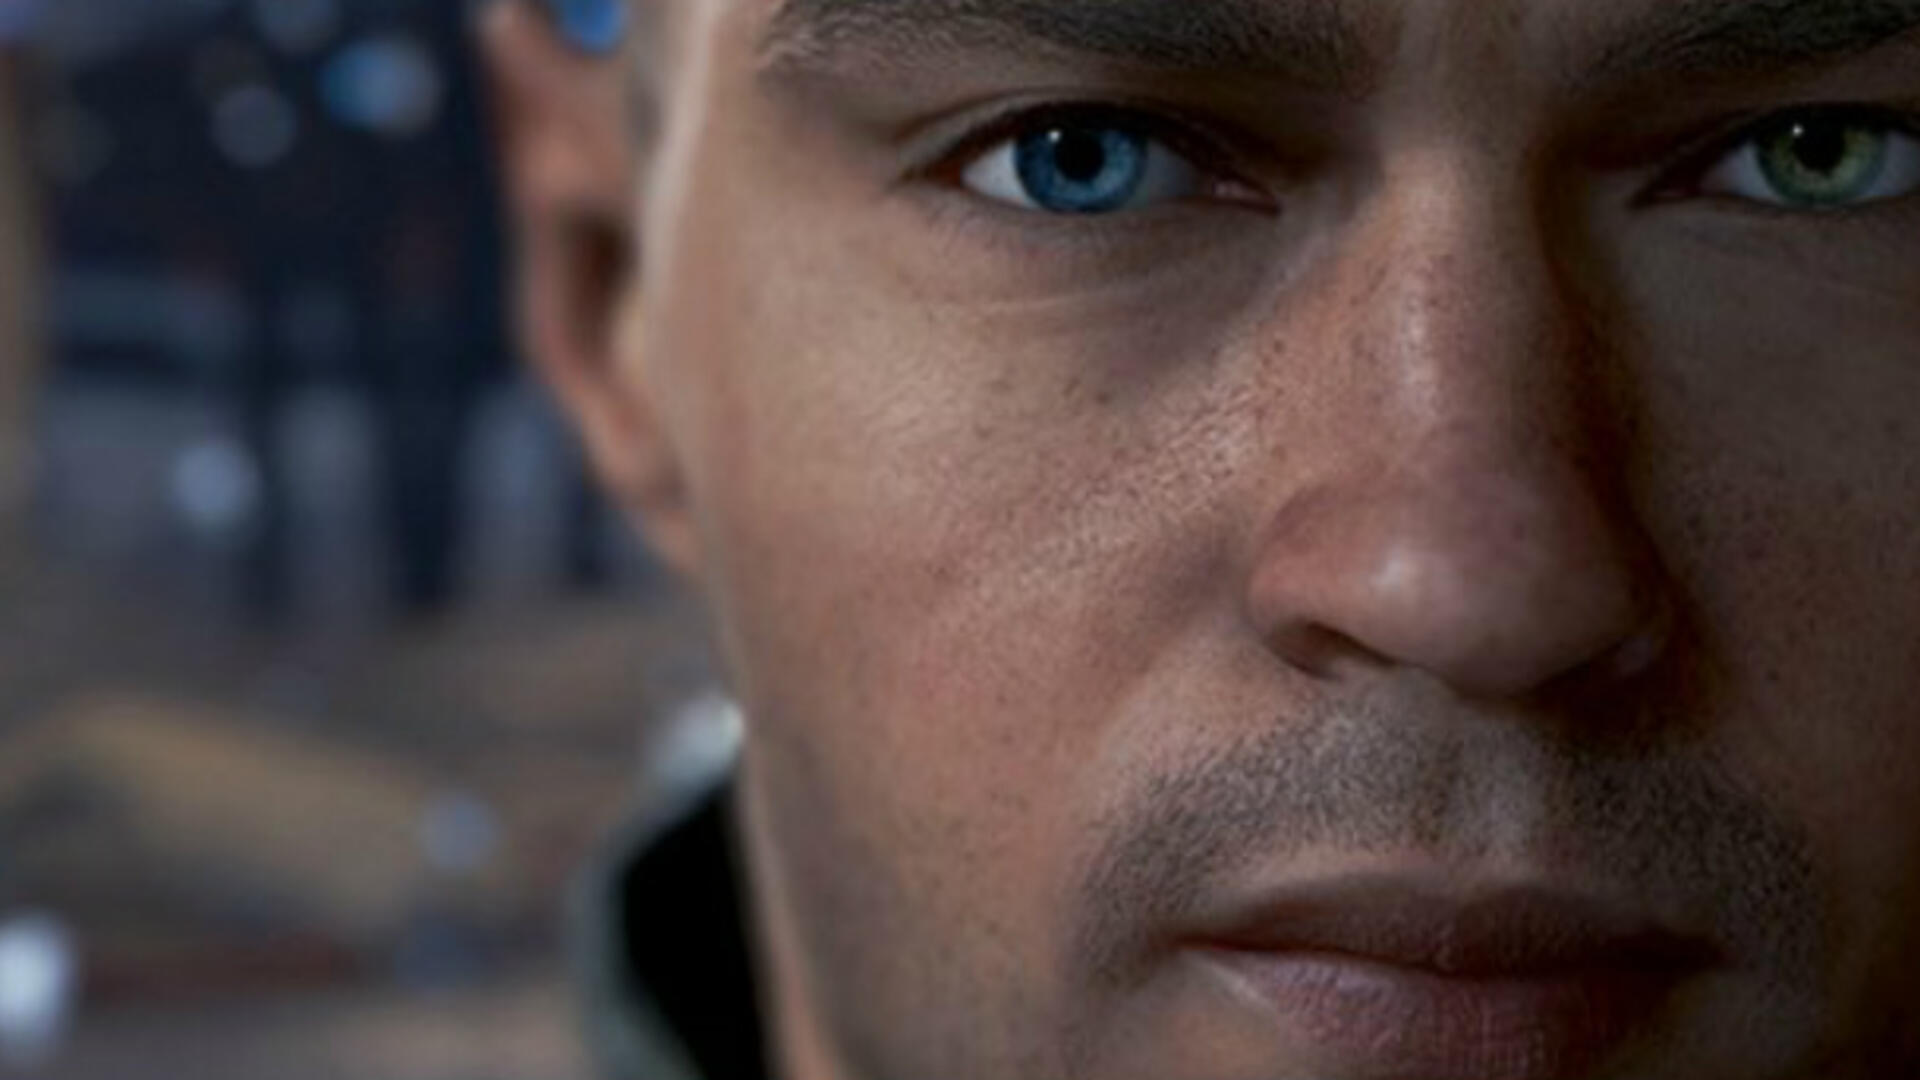 Detroit: Become Human Release Date Confirmed for May